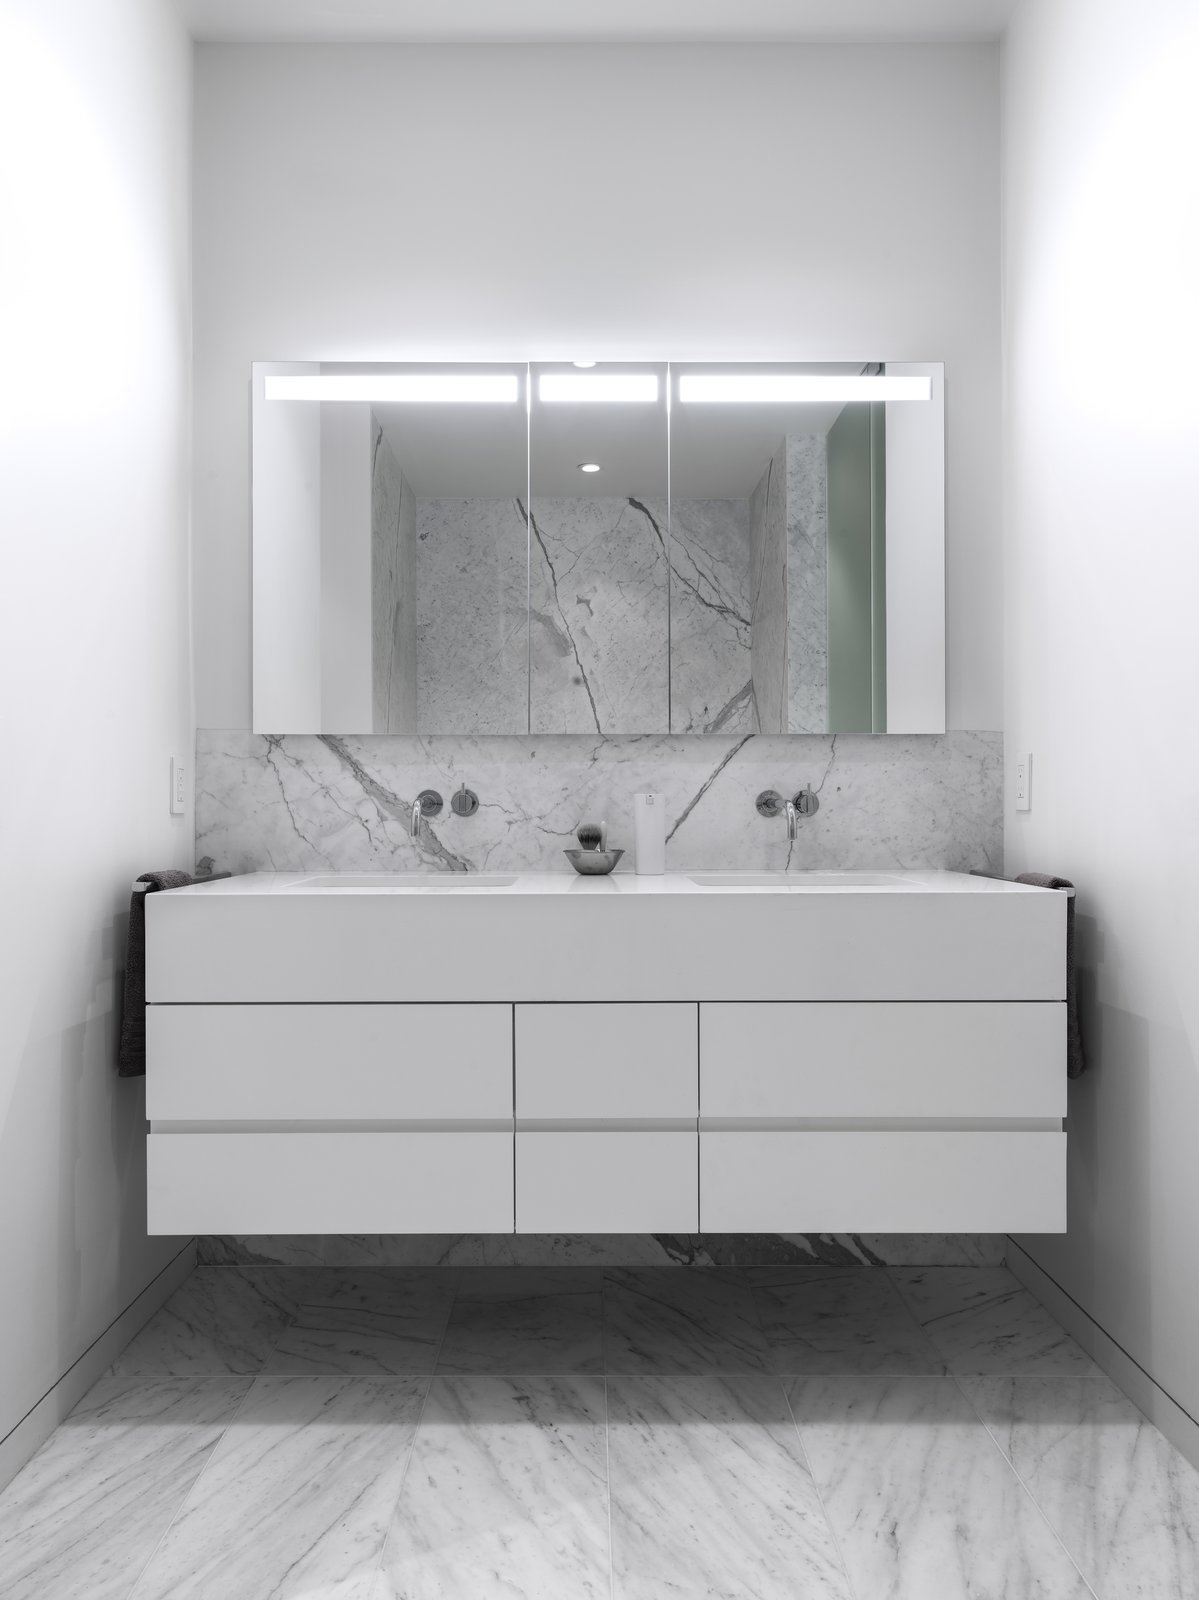 Custom vanity with solid surface counter-top and fascia at the Master Bathroom. The recessed medicine cabinet with integral lighting is by Sidler.  Telegraph Hill Periscope by Samaha+Hart Architecture